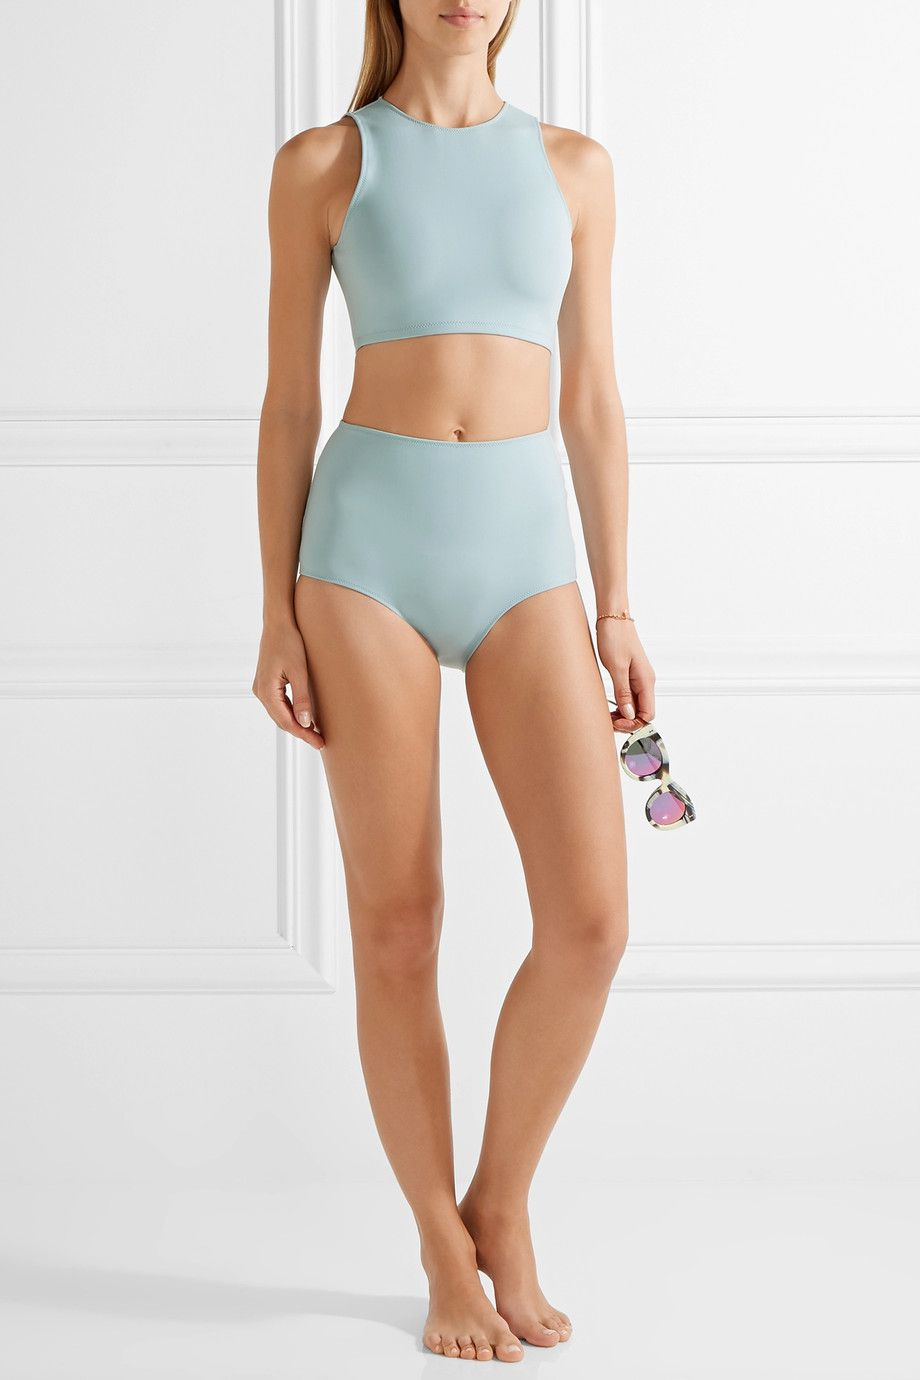 A model wearing a teal bathing suit